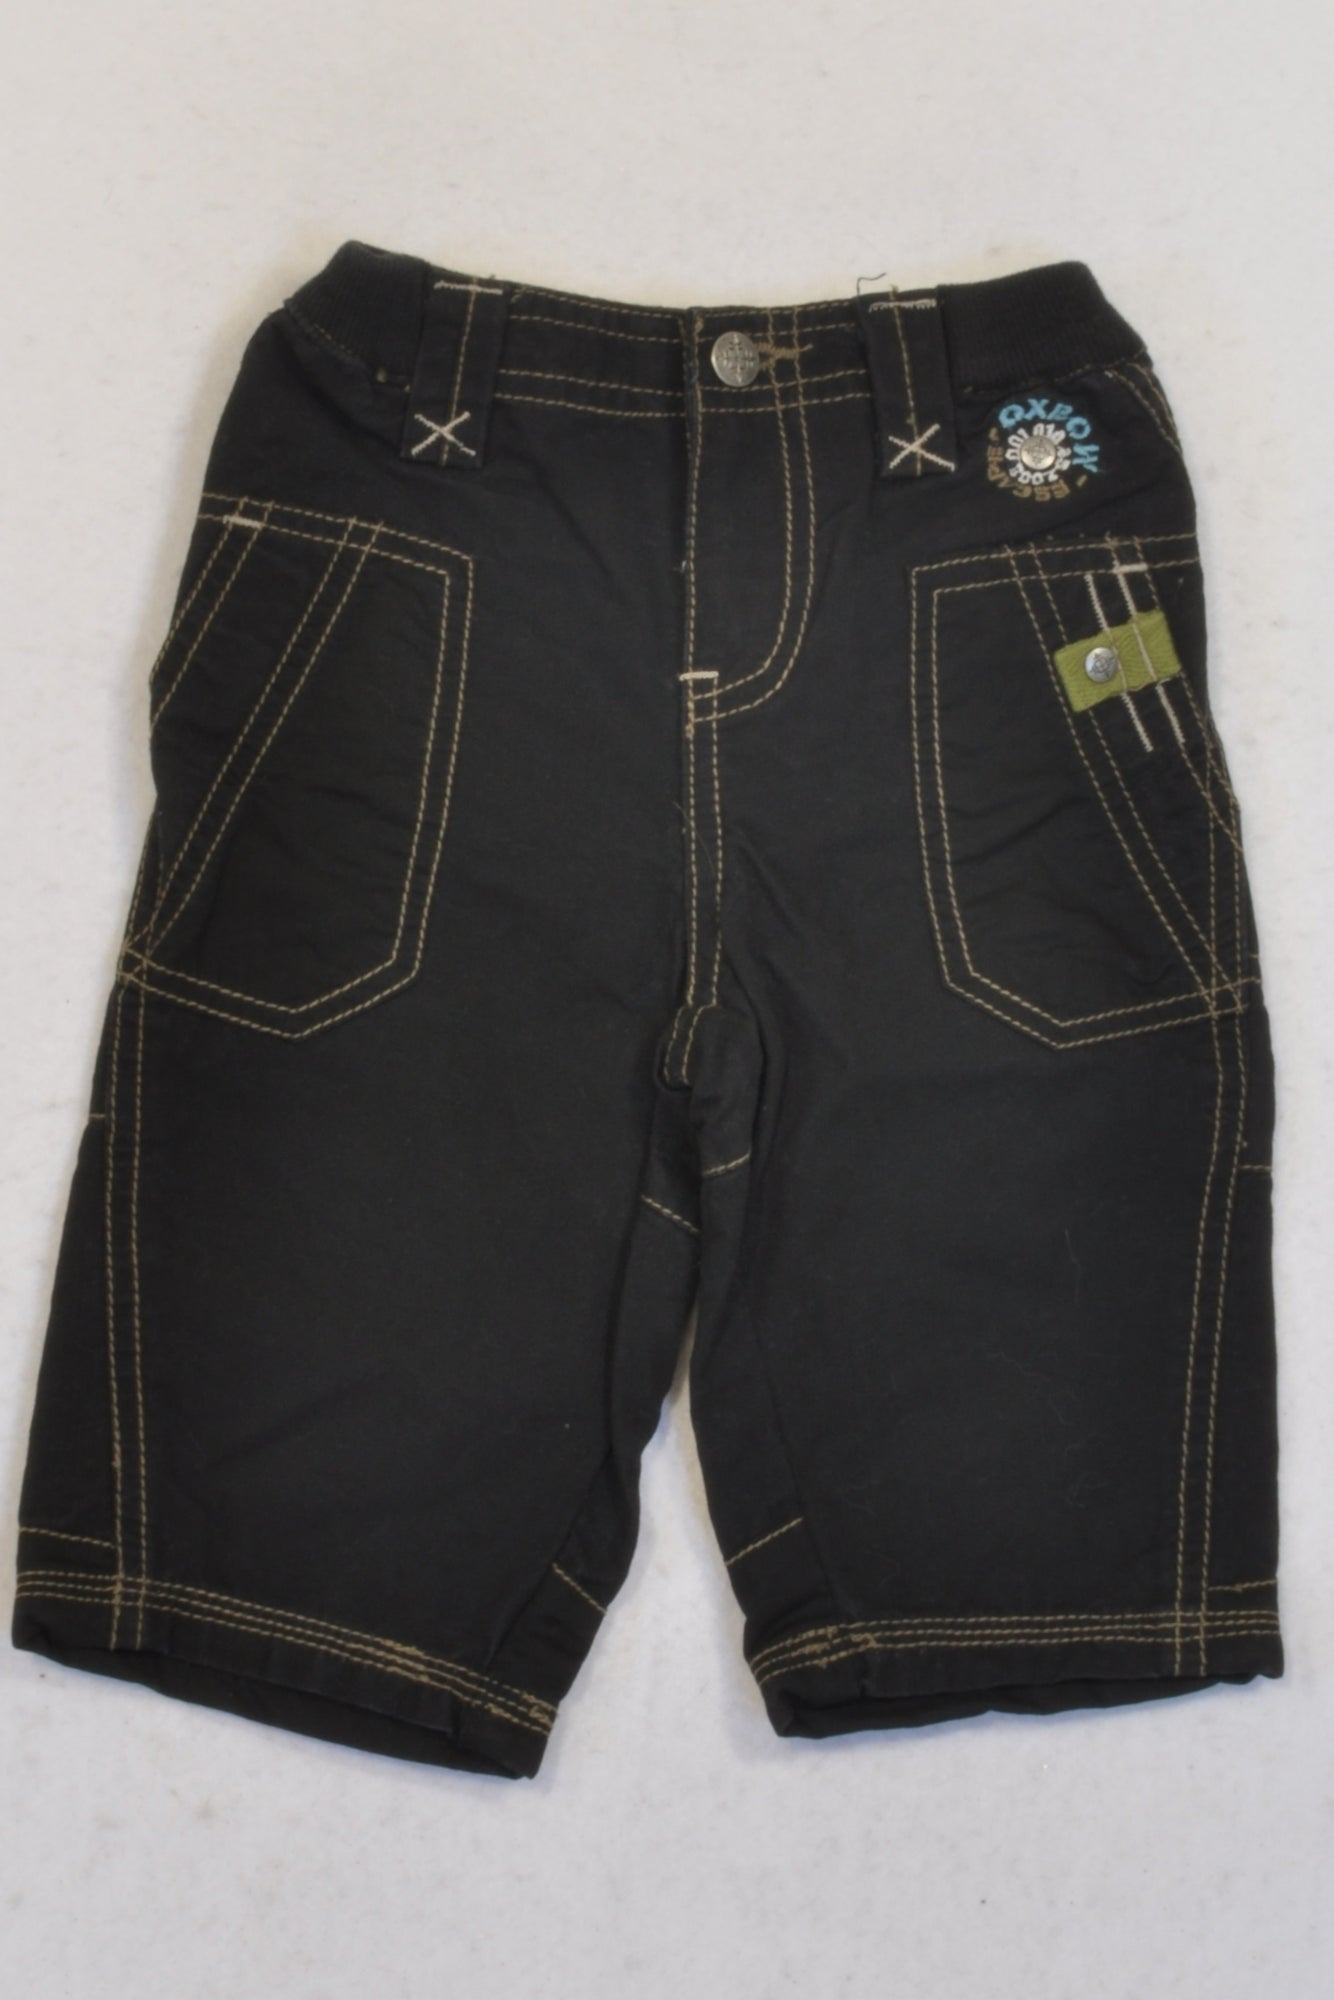 Oxbow Dark Brown Banded Pants Boys 3-6 months